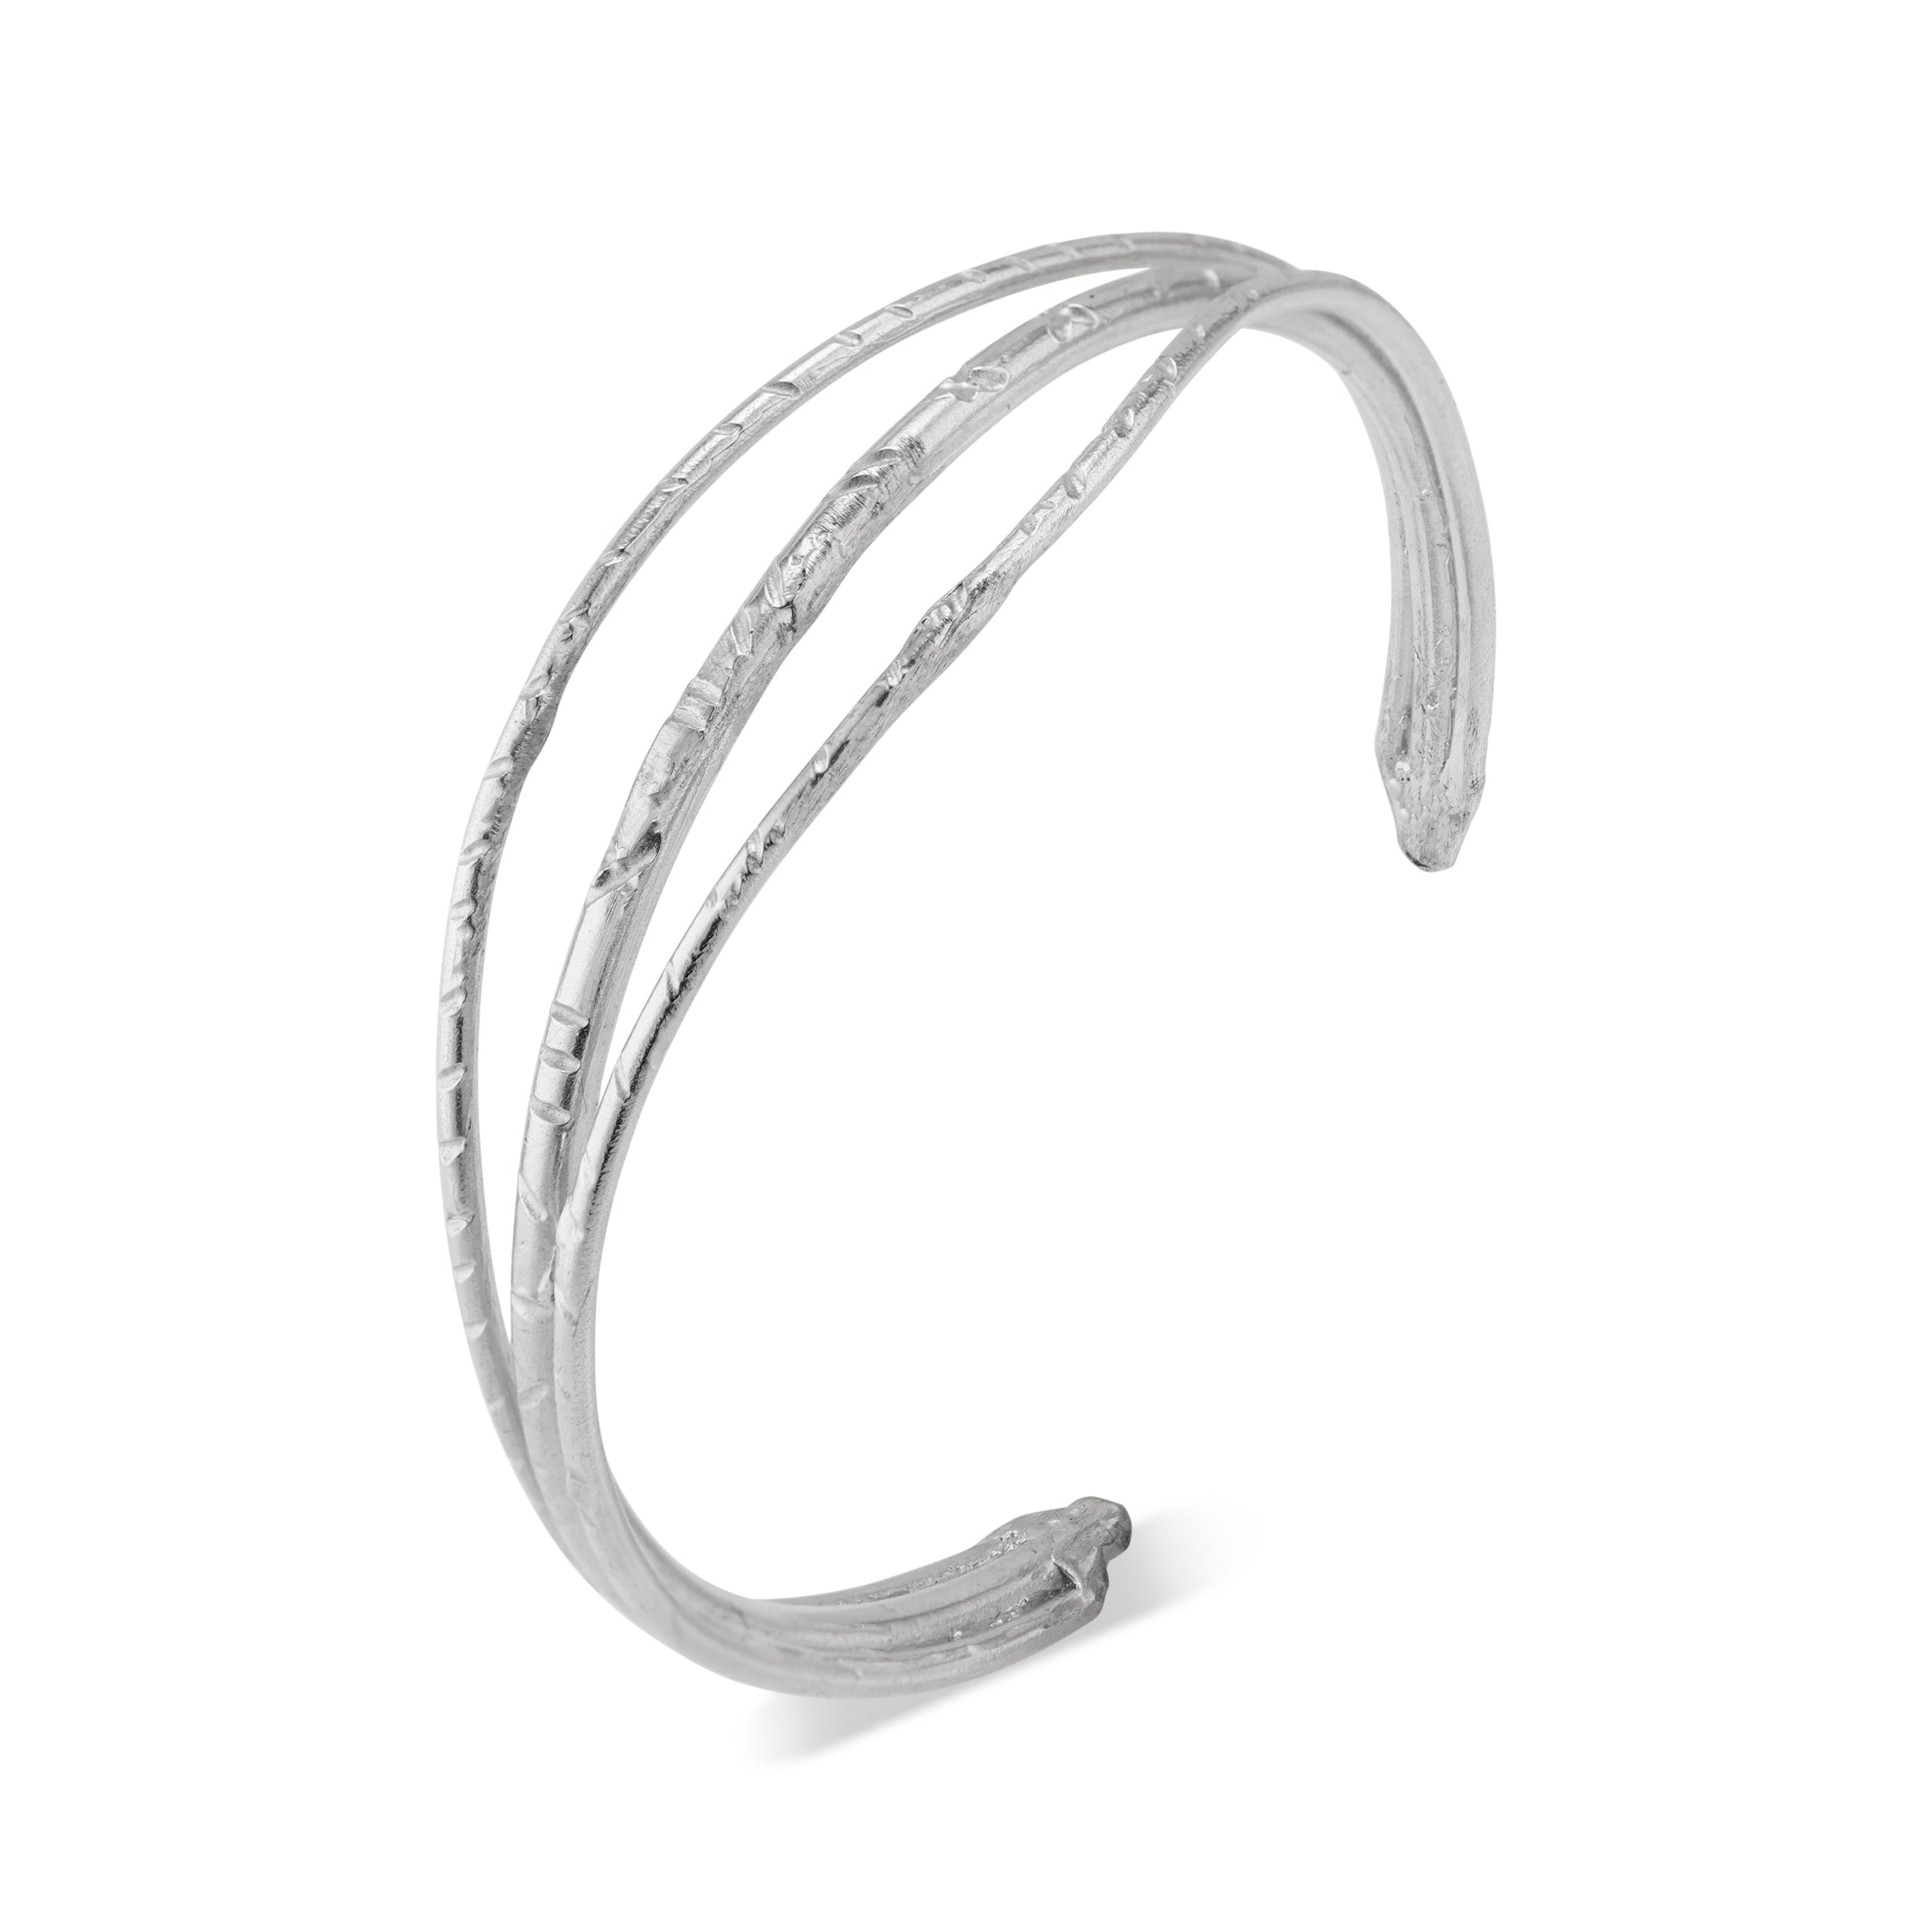 The Tate Cuff by Natalie McMillan is made of solid sterling silver, and while extremely durable, can still be slightly adjusted depending on the size of your arm. It can easily be dressed up or down and is a great staple piece to have!